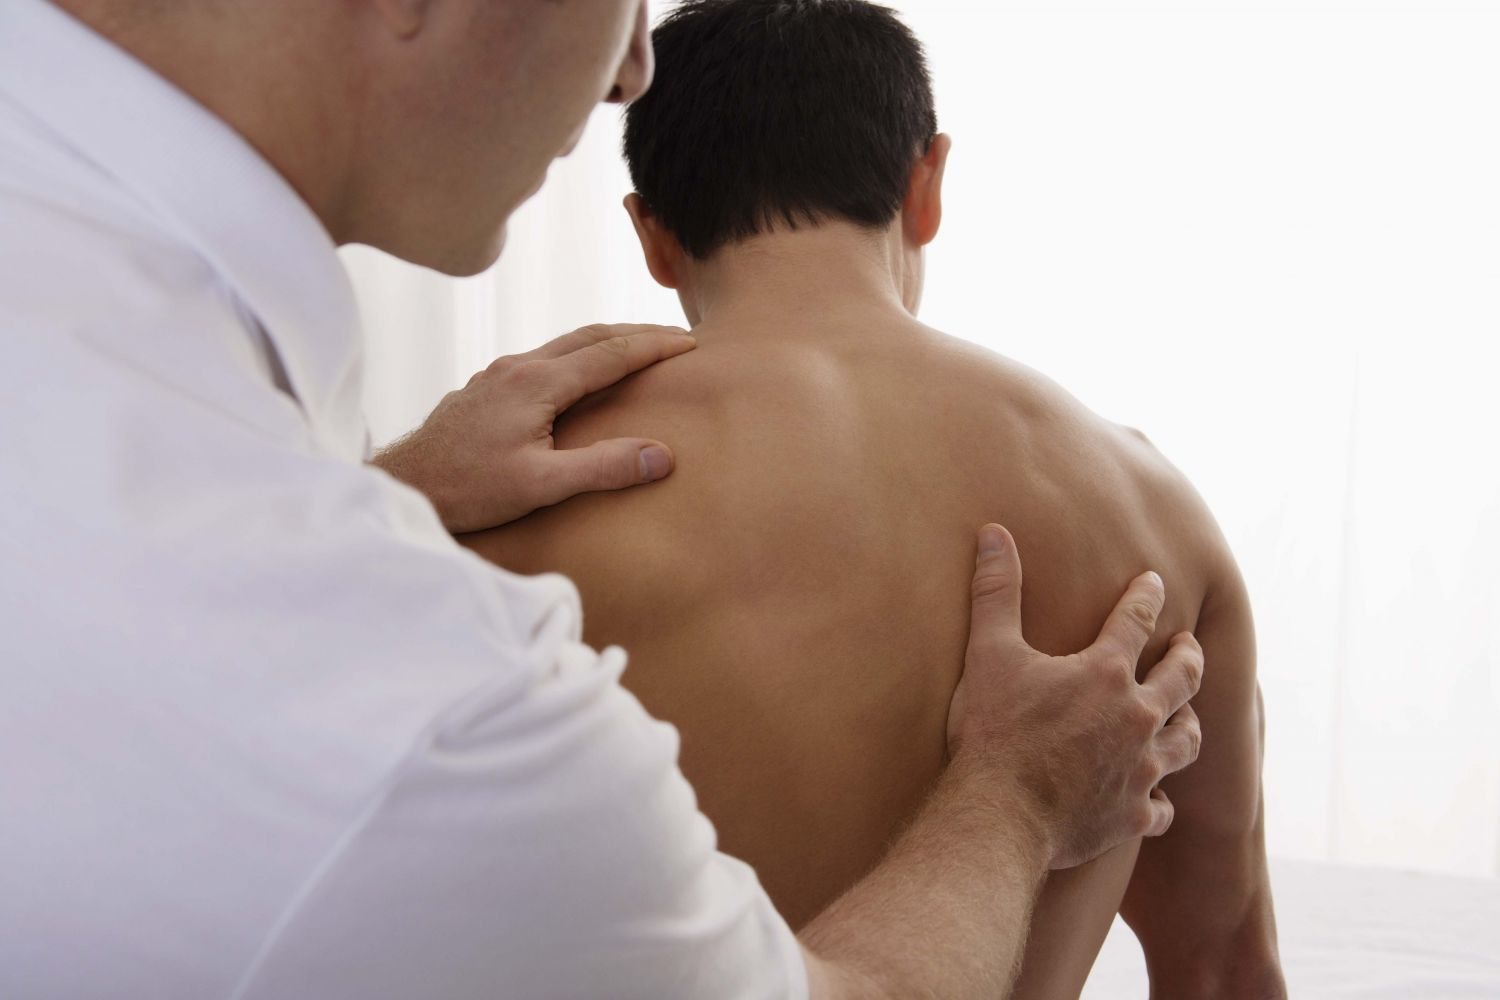 Chiropractor works on back or neck pain in North Pole, AK